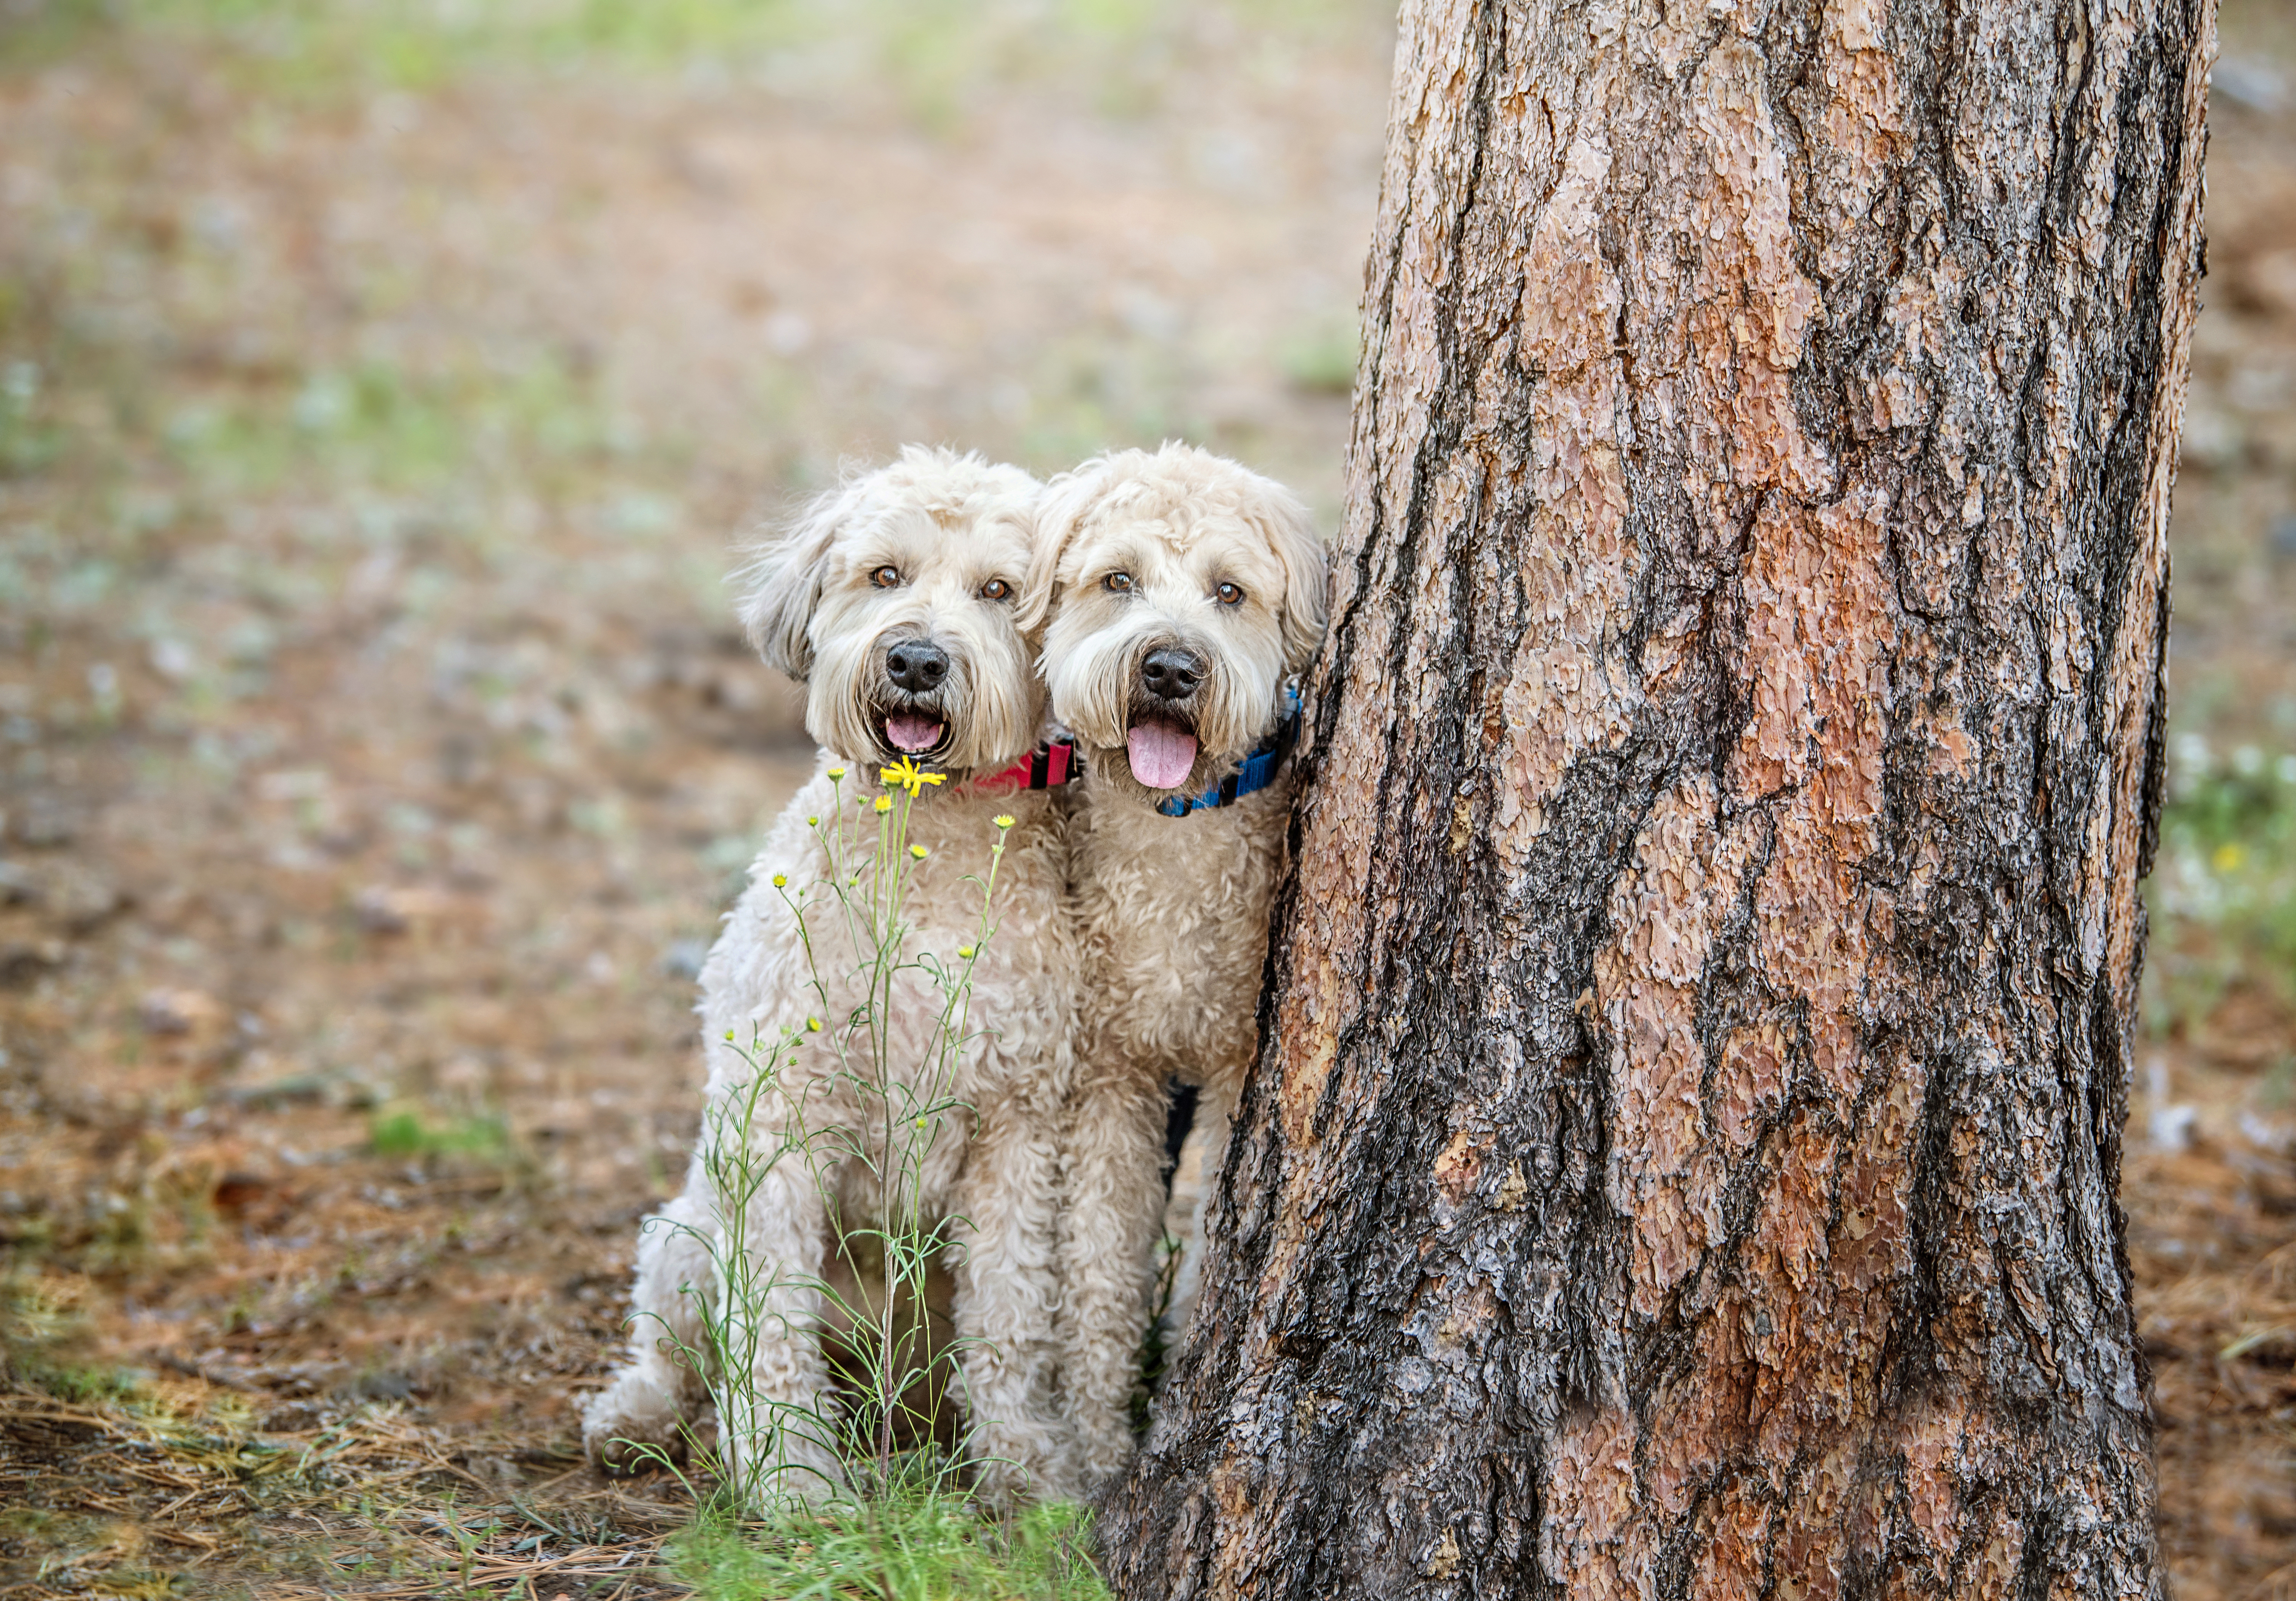 The Wheatons Terriers